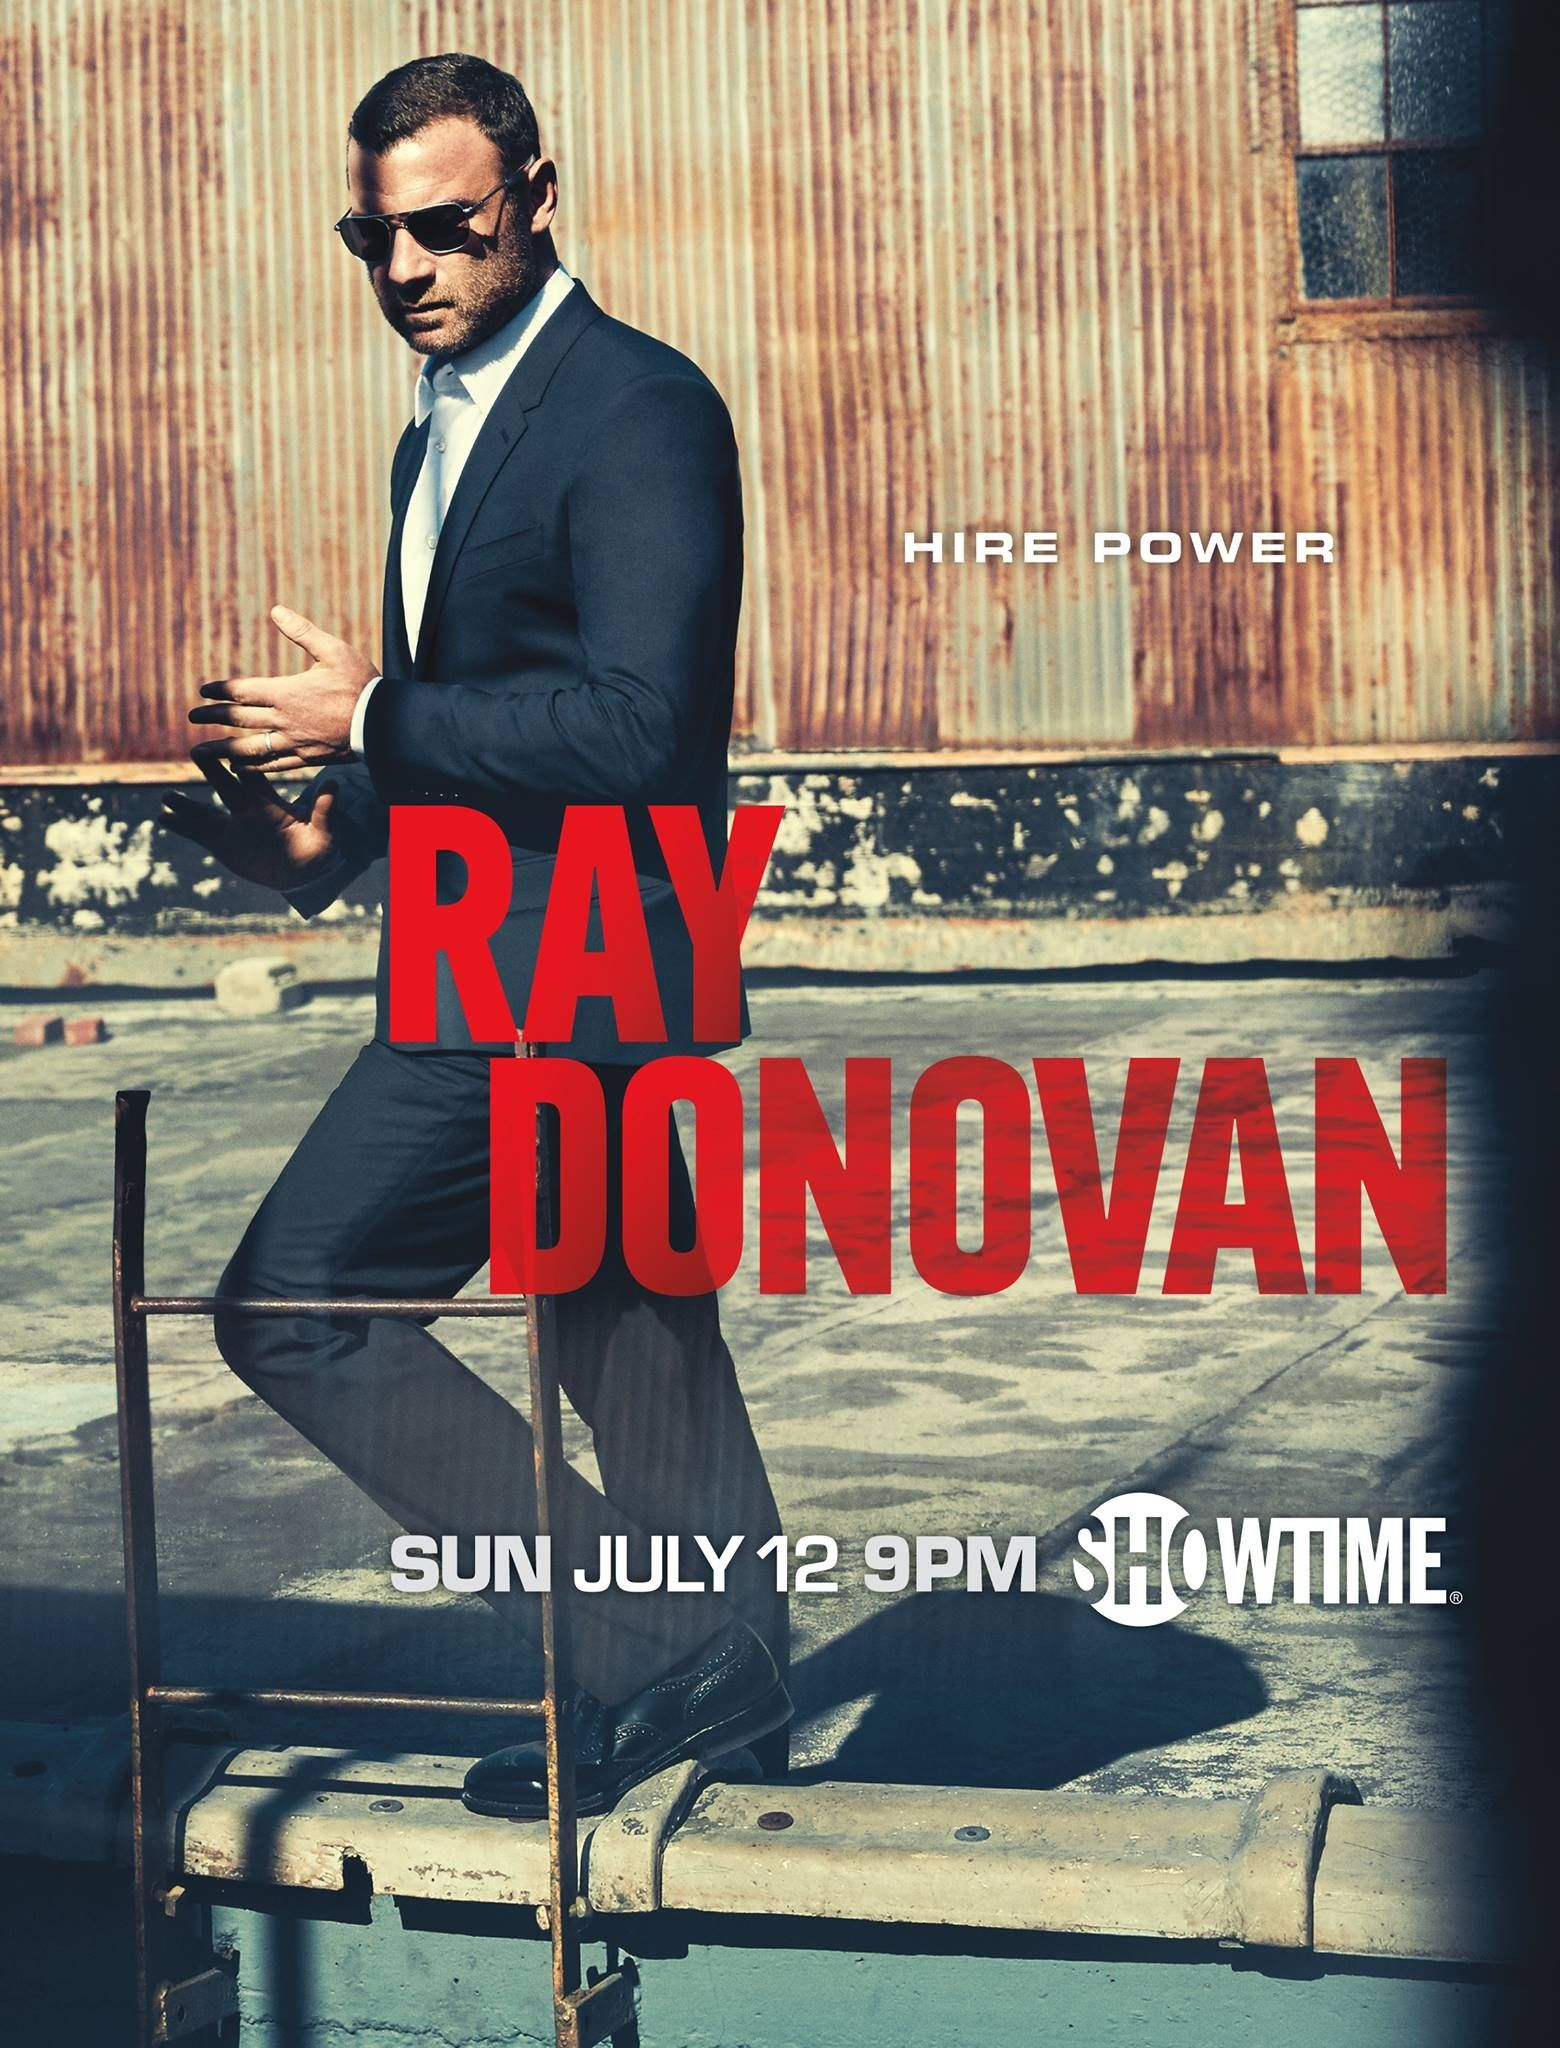 Ray Donovan Mega Sized Movie Poster Image Internet Movie Poster Awards Gallery Ray Donovan Best Tv Shows Tv Series 2013